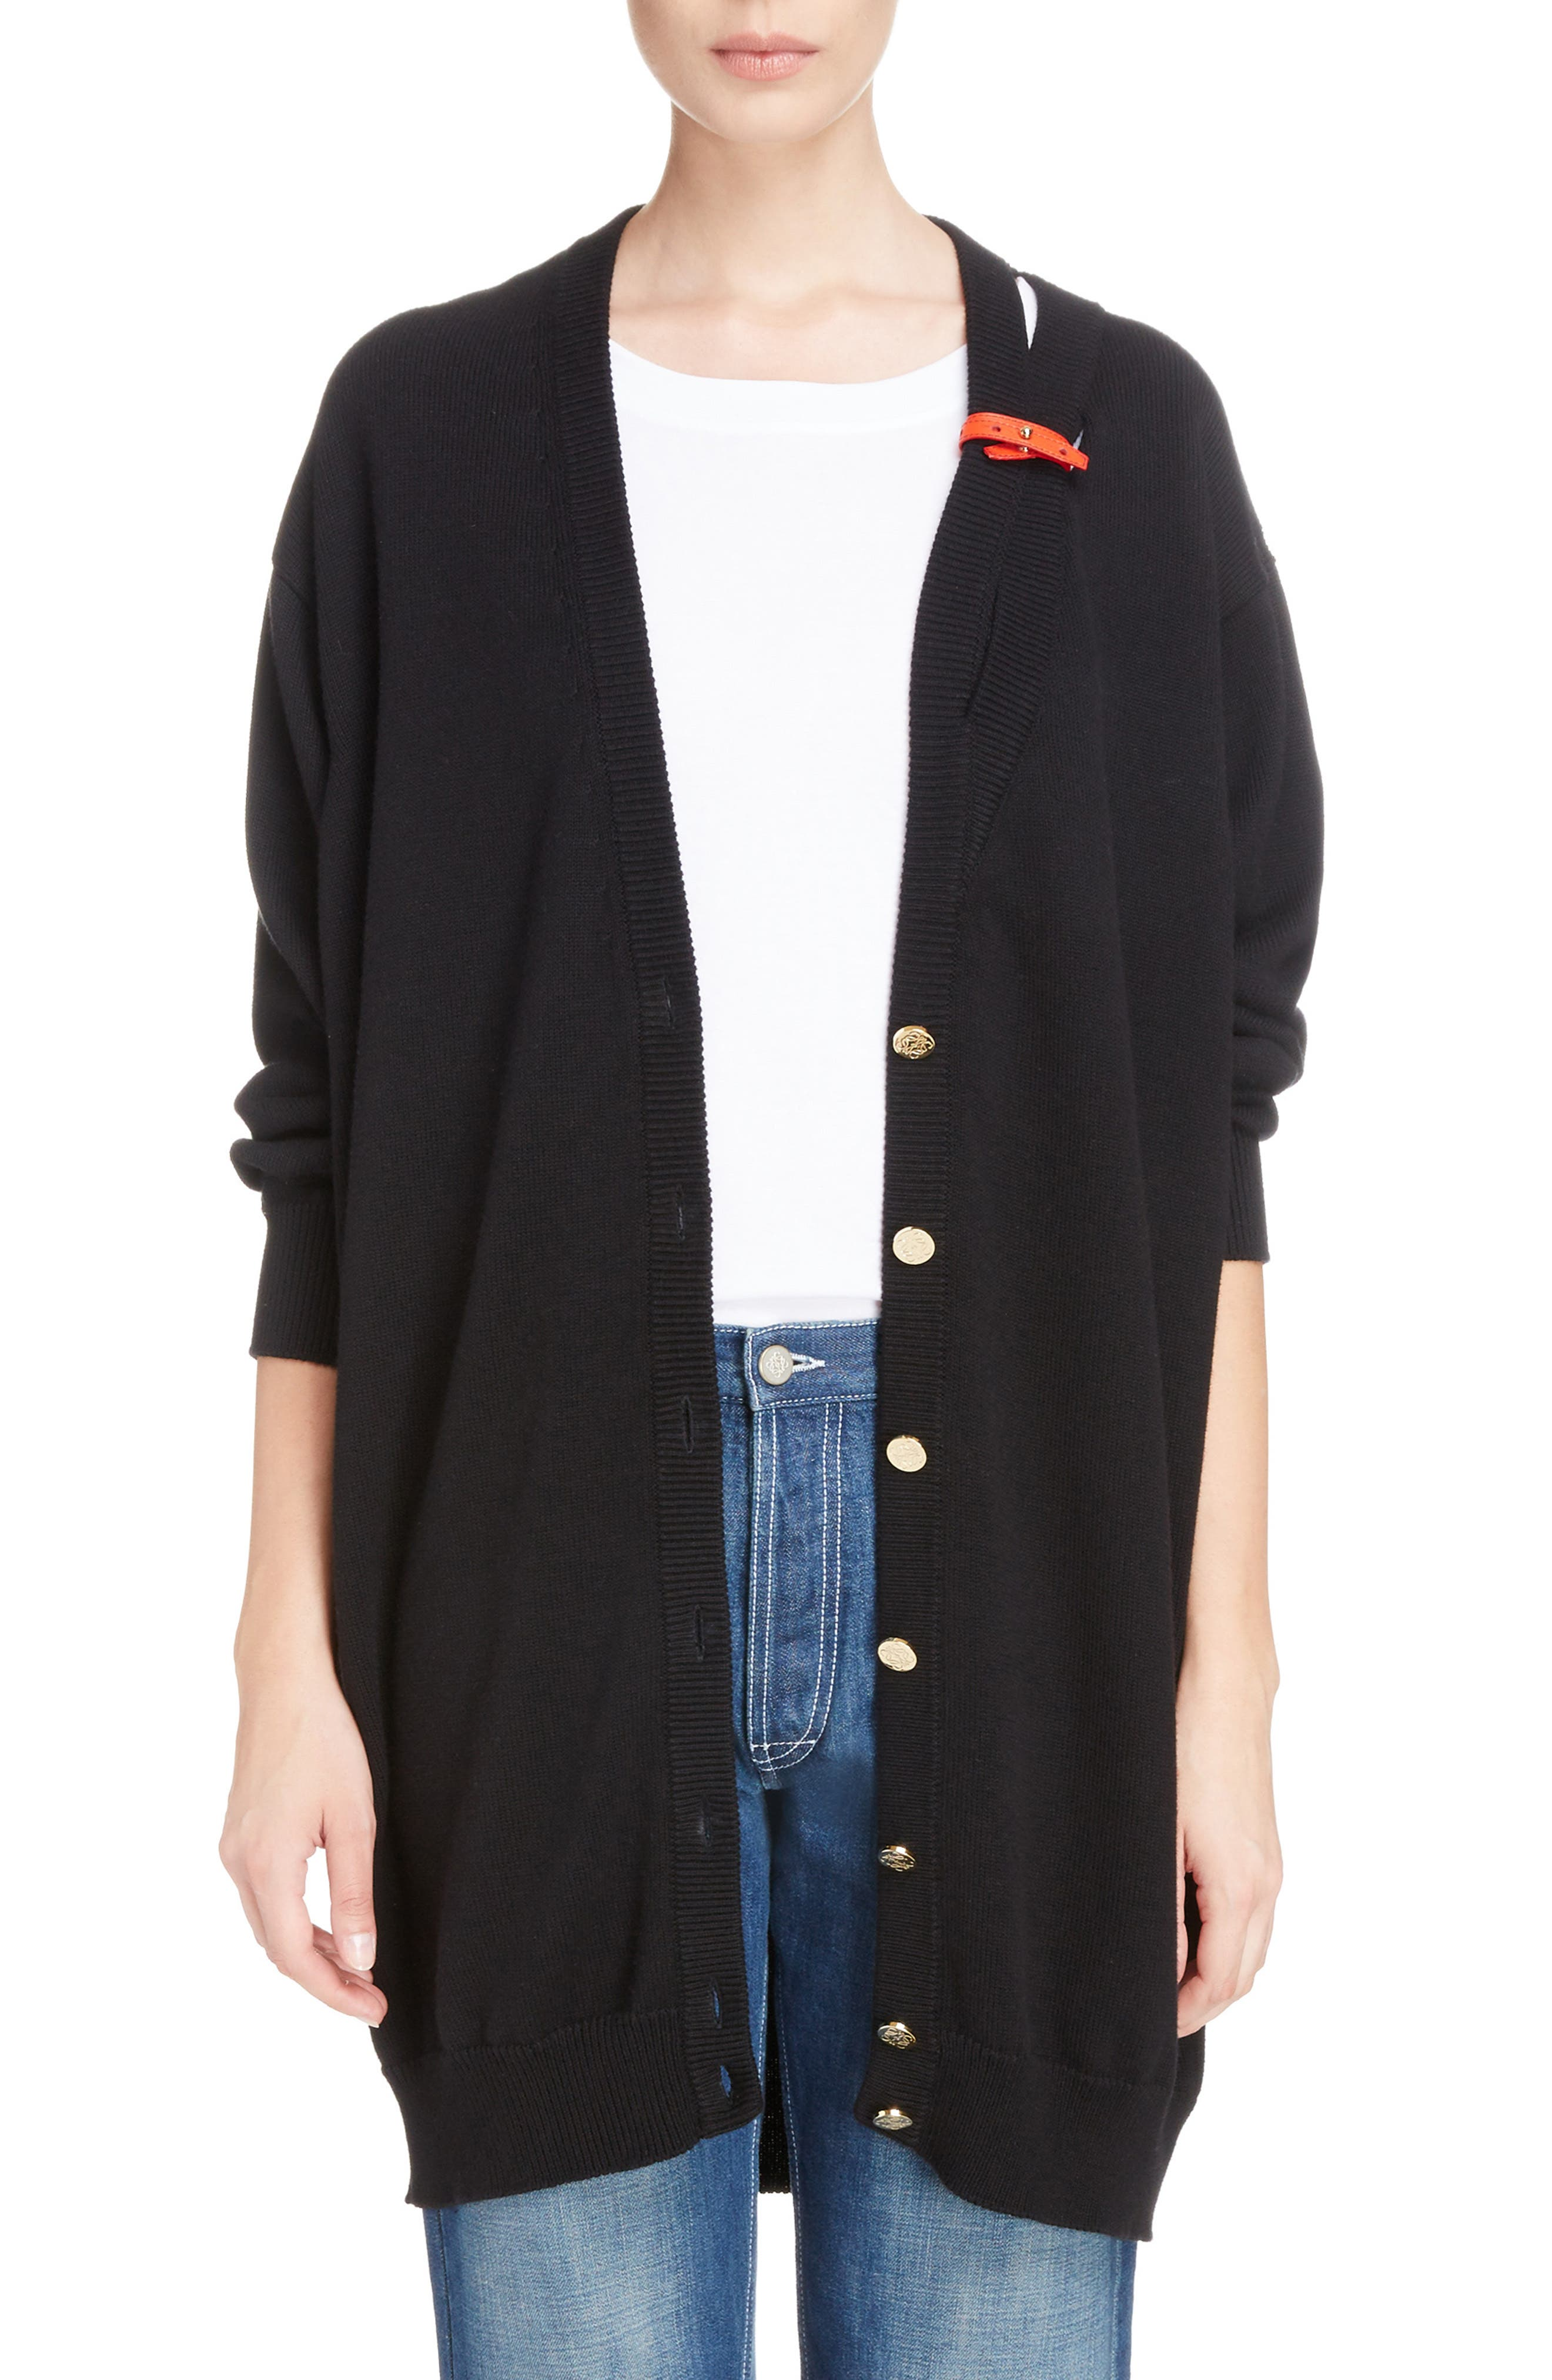 Loewe Leather Band Cotton & Cashmere Cardigan